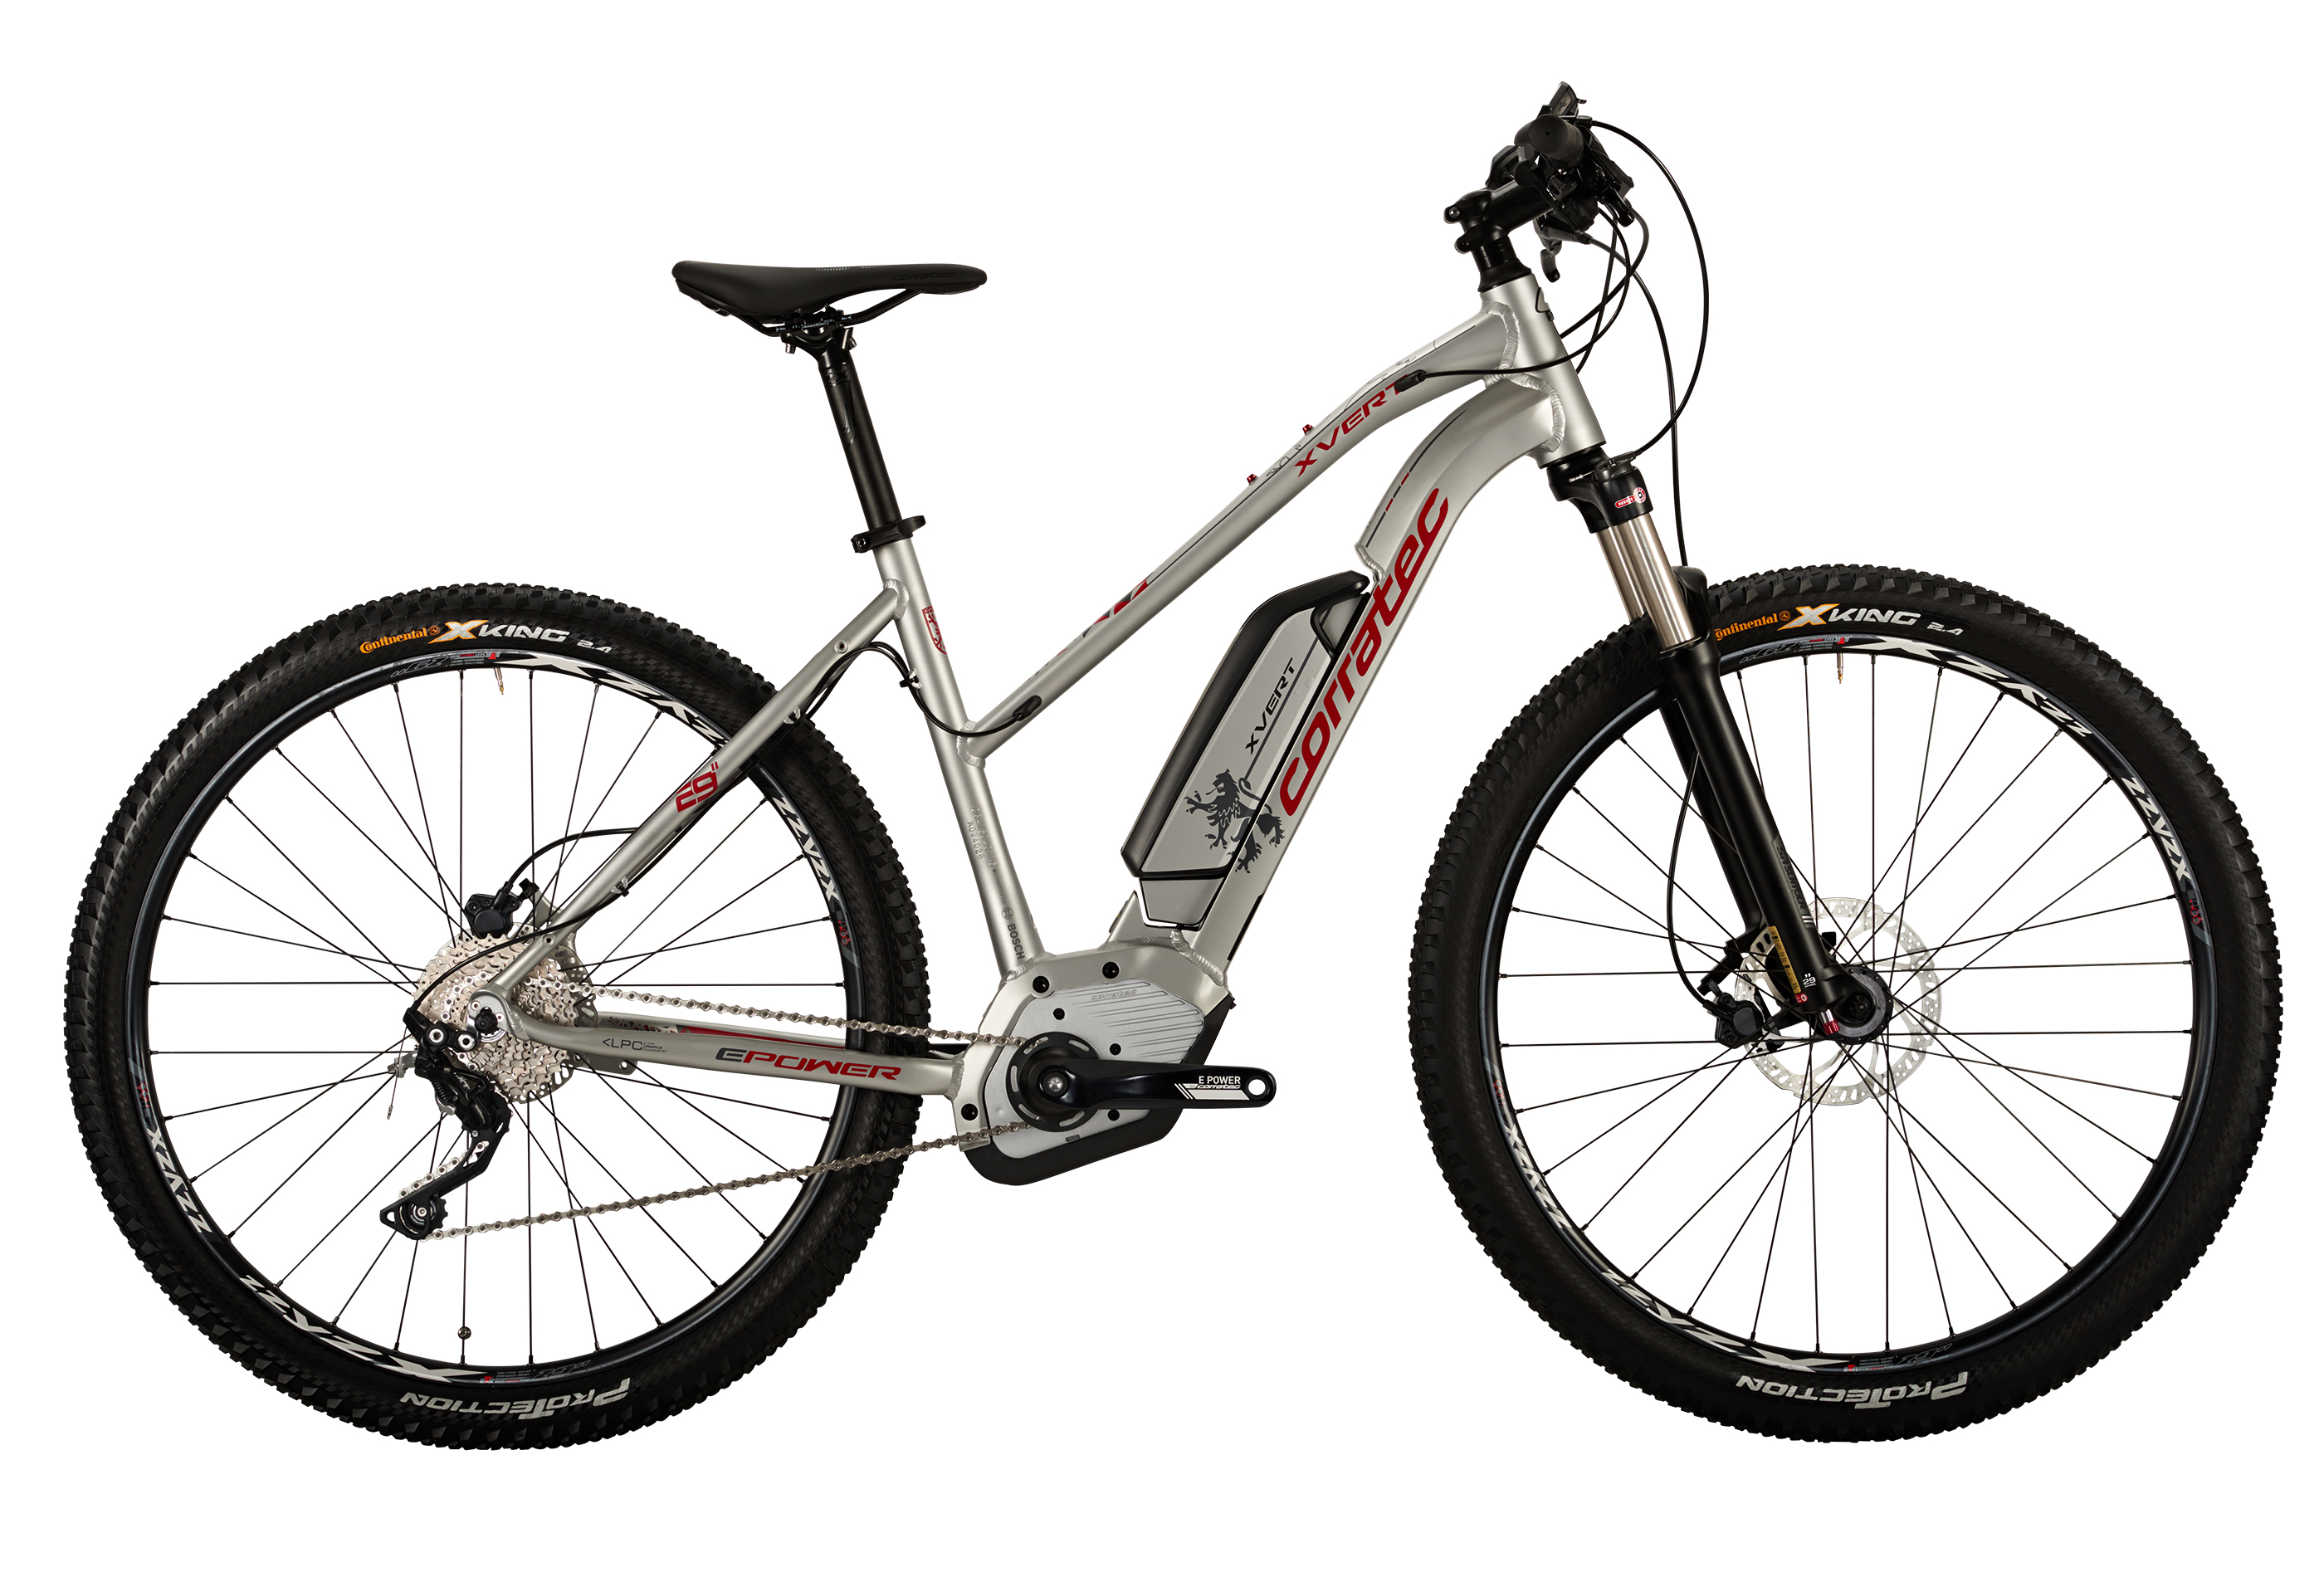 CORRATEC BK22250 X-VERT 29 - MOUNTAIN (DROP TOP TUBE) HARDTAIL